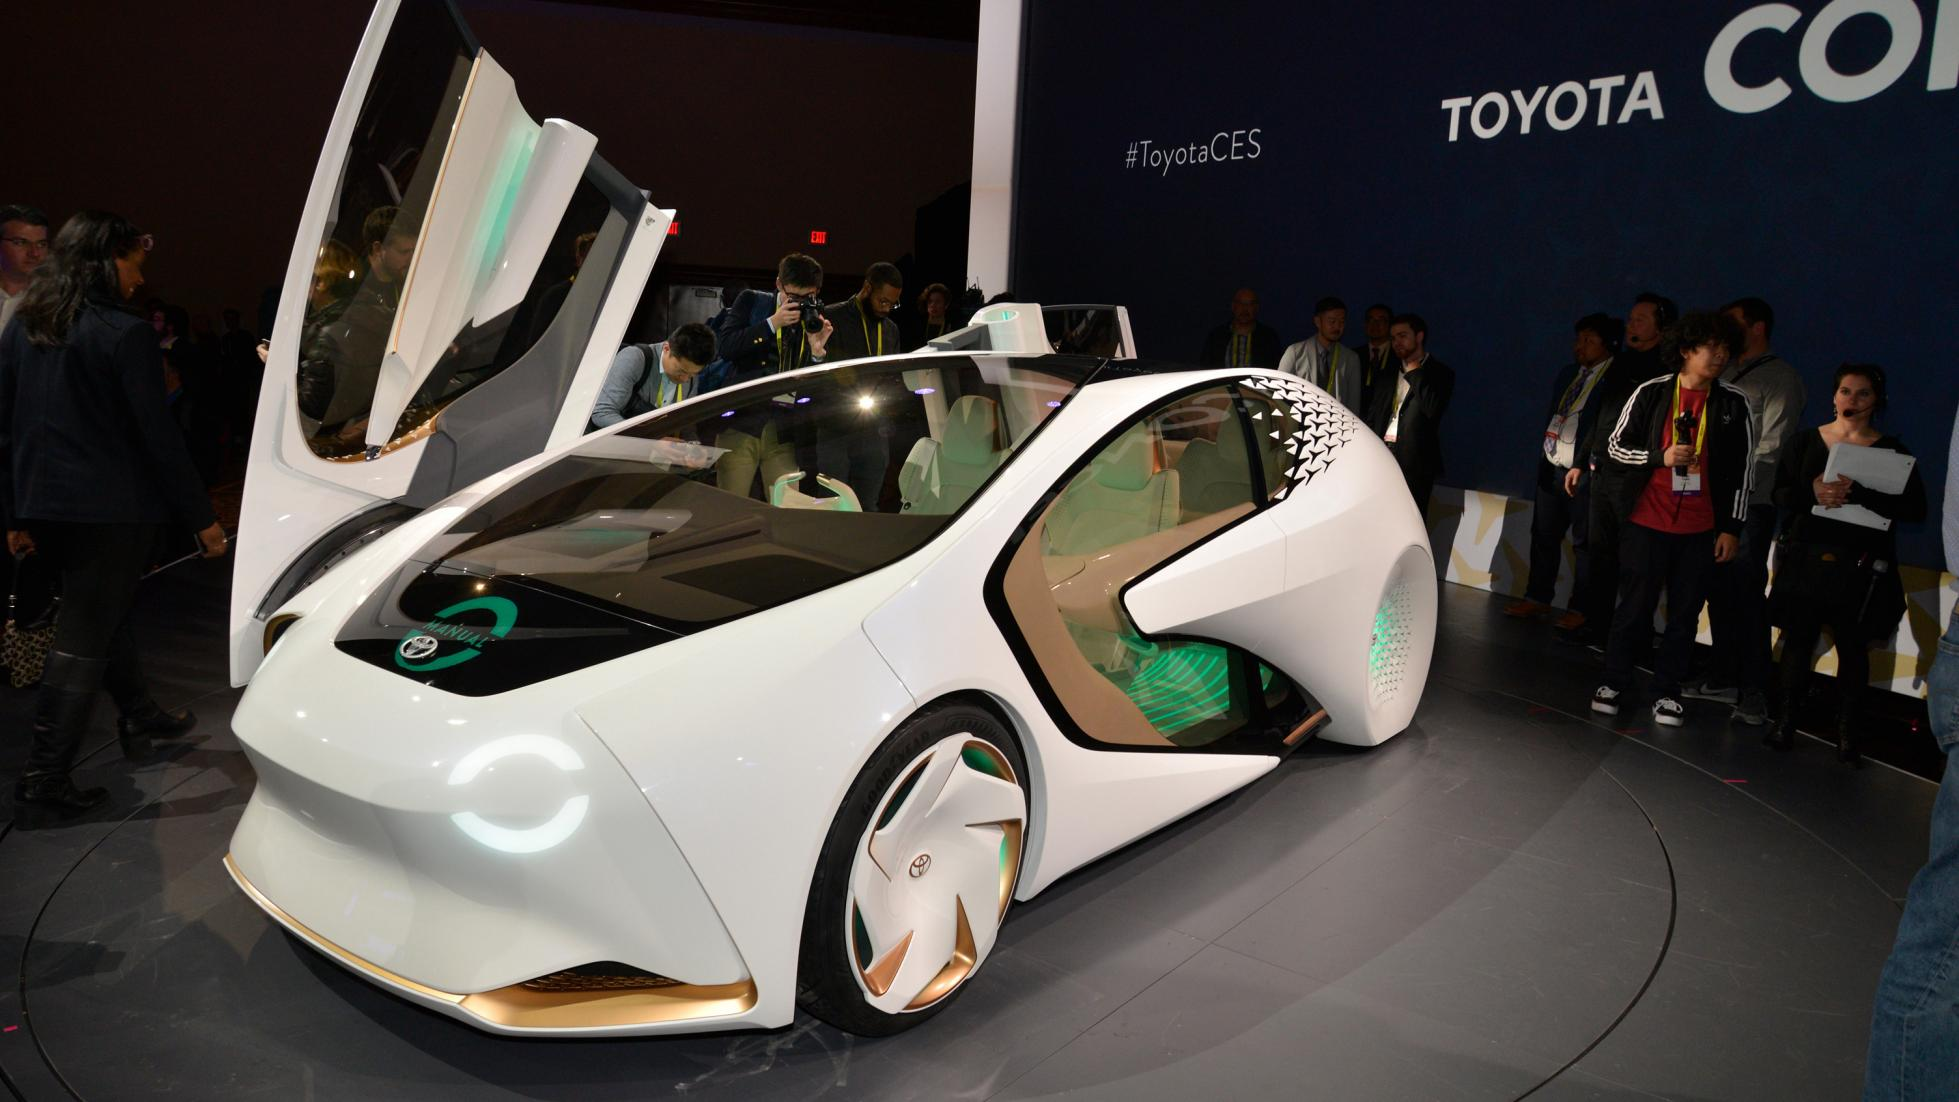 toyota concept i urbanizehub cities future smart